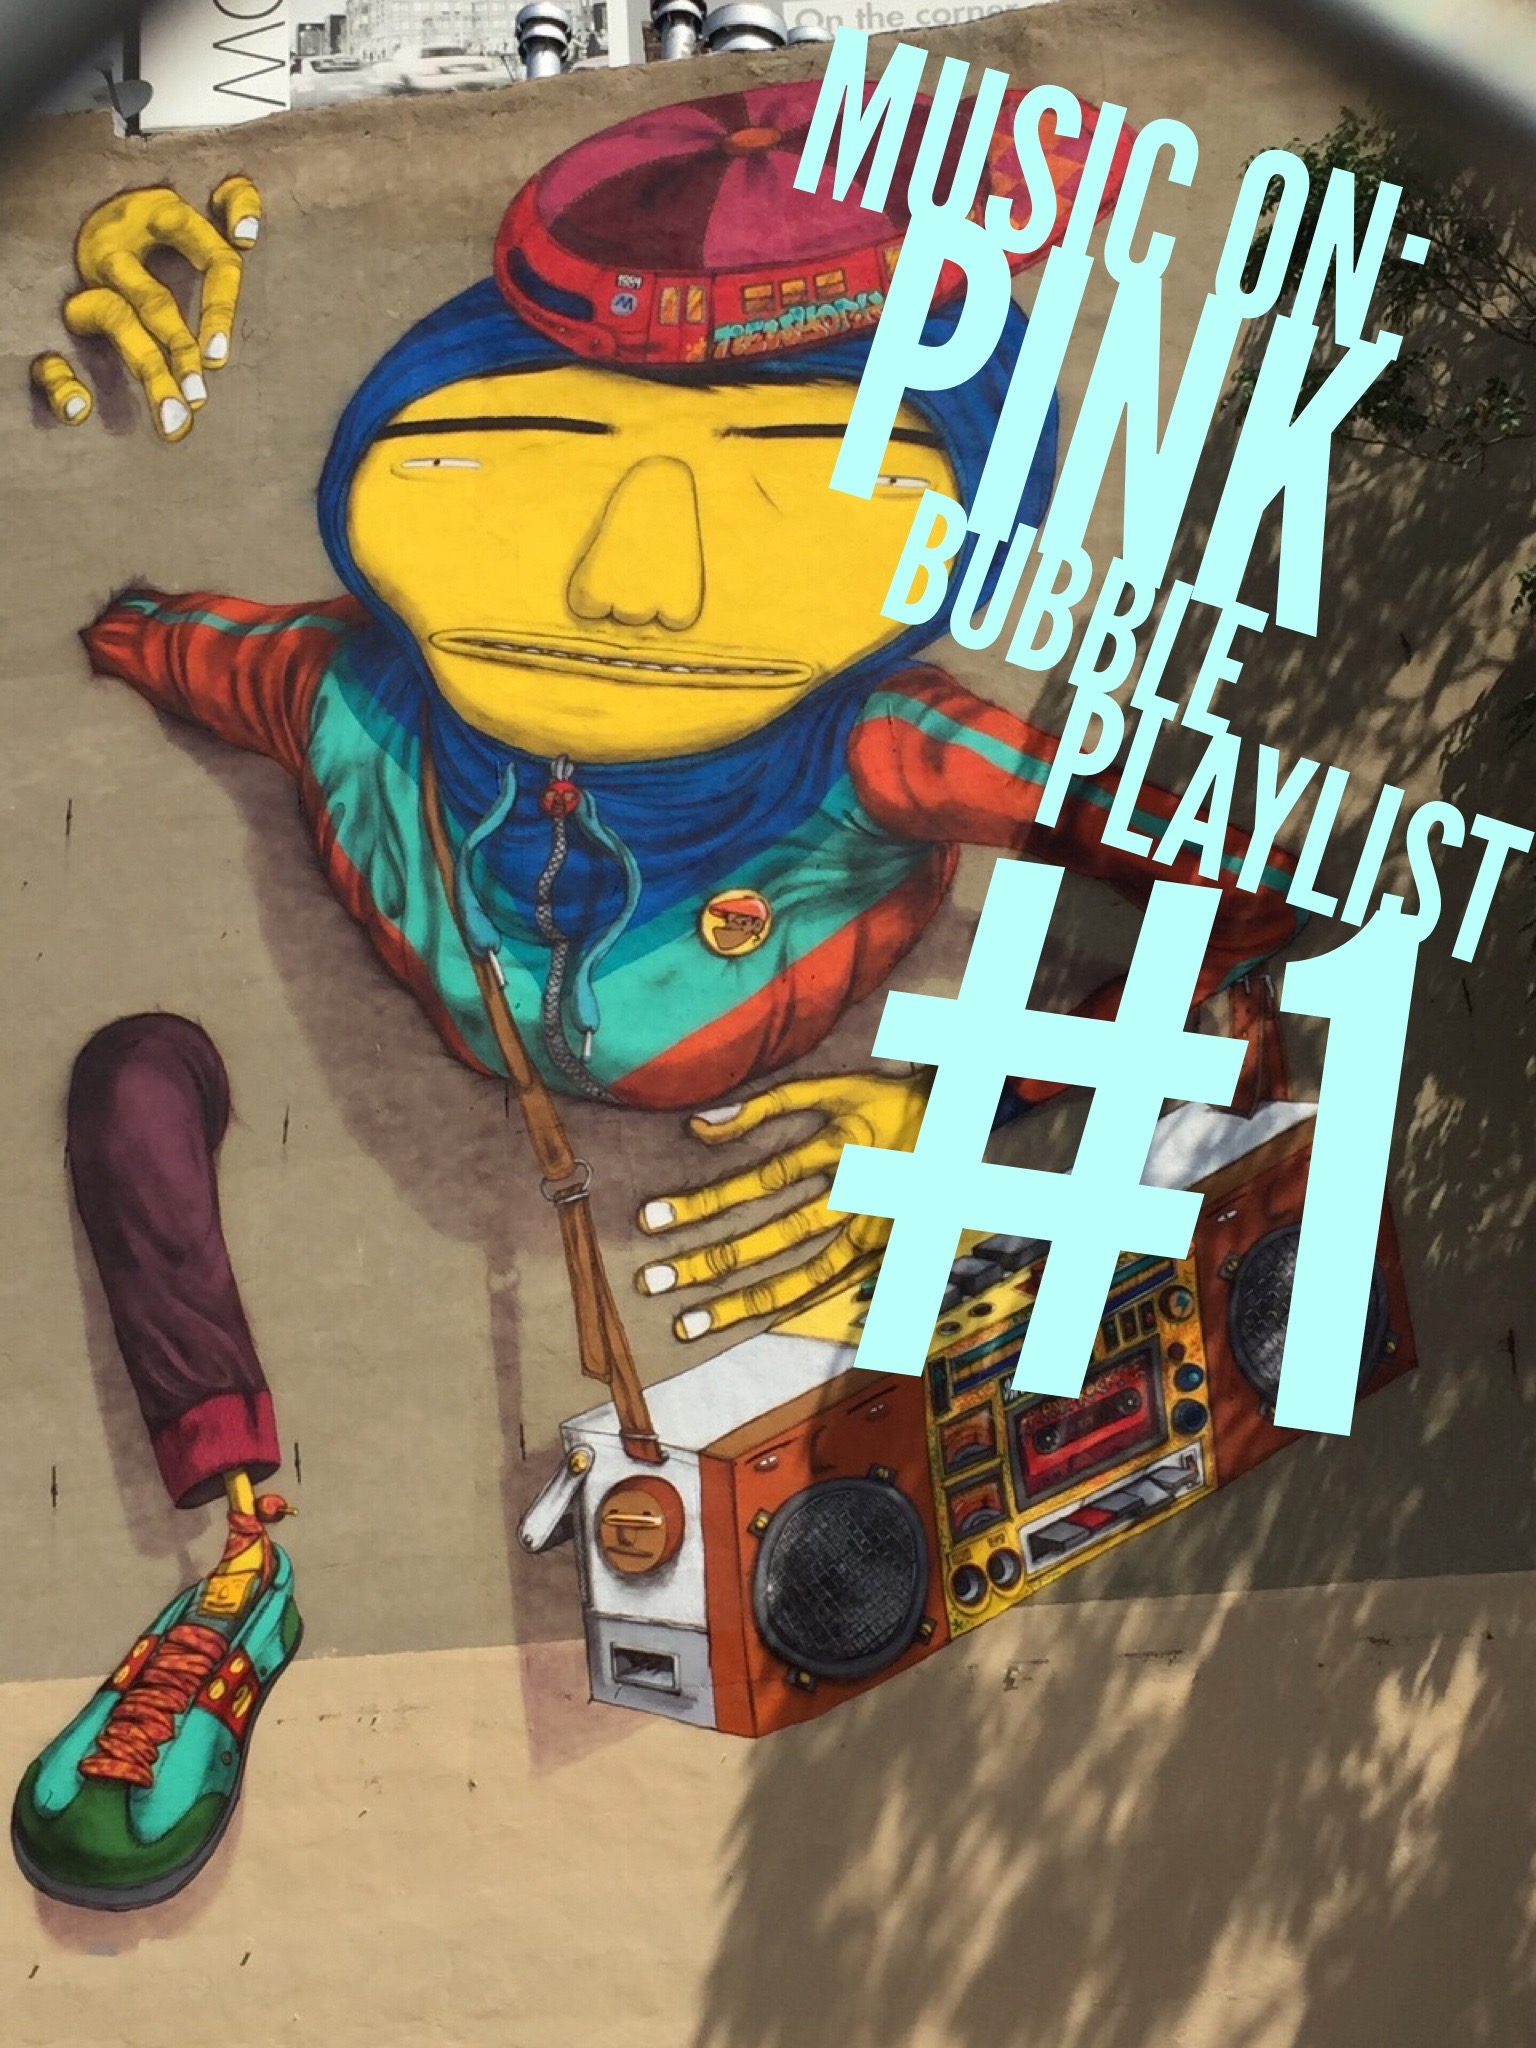 Music on: Pink Bubble playlist #1 on Spotify. www.thedreamcorner.net